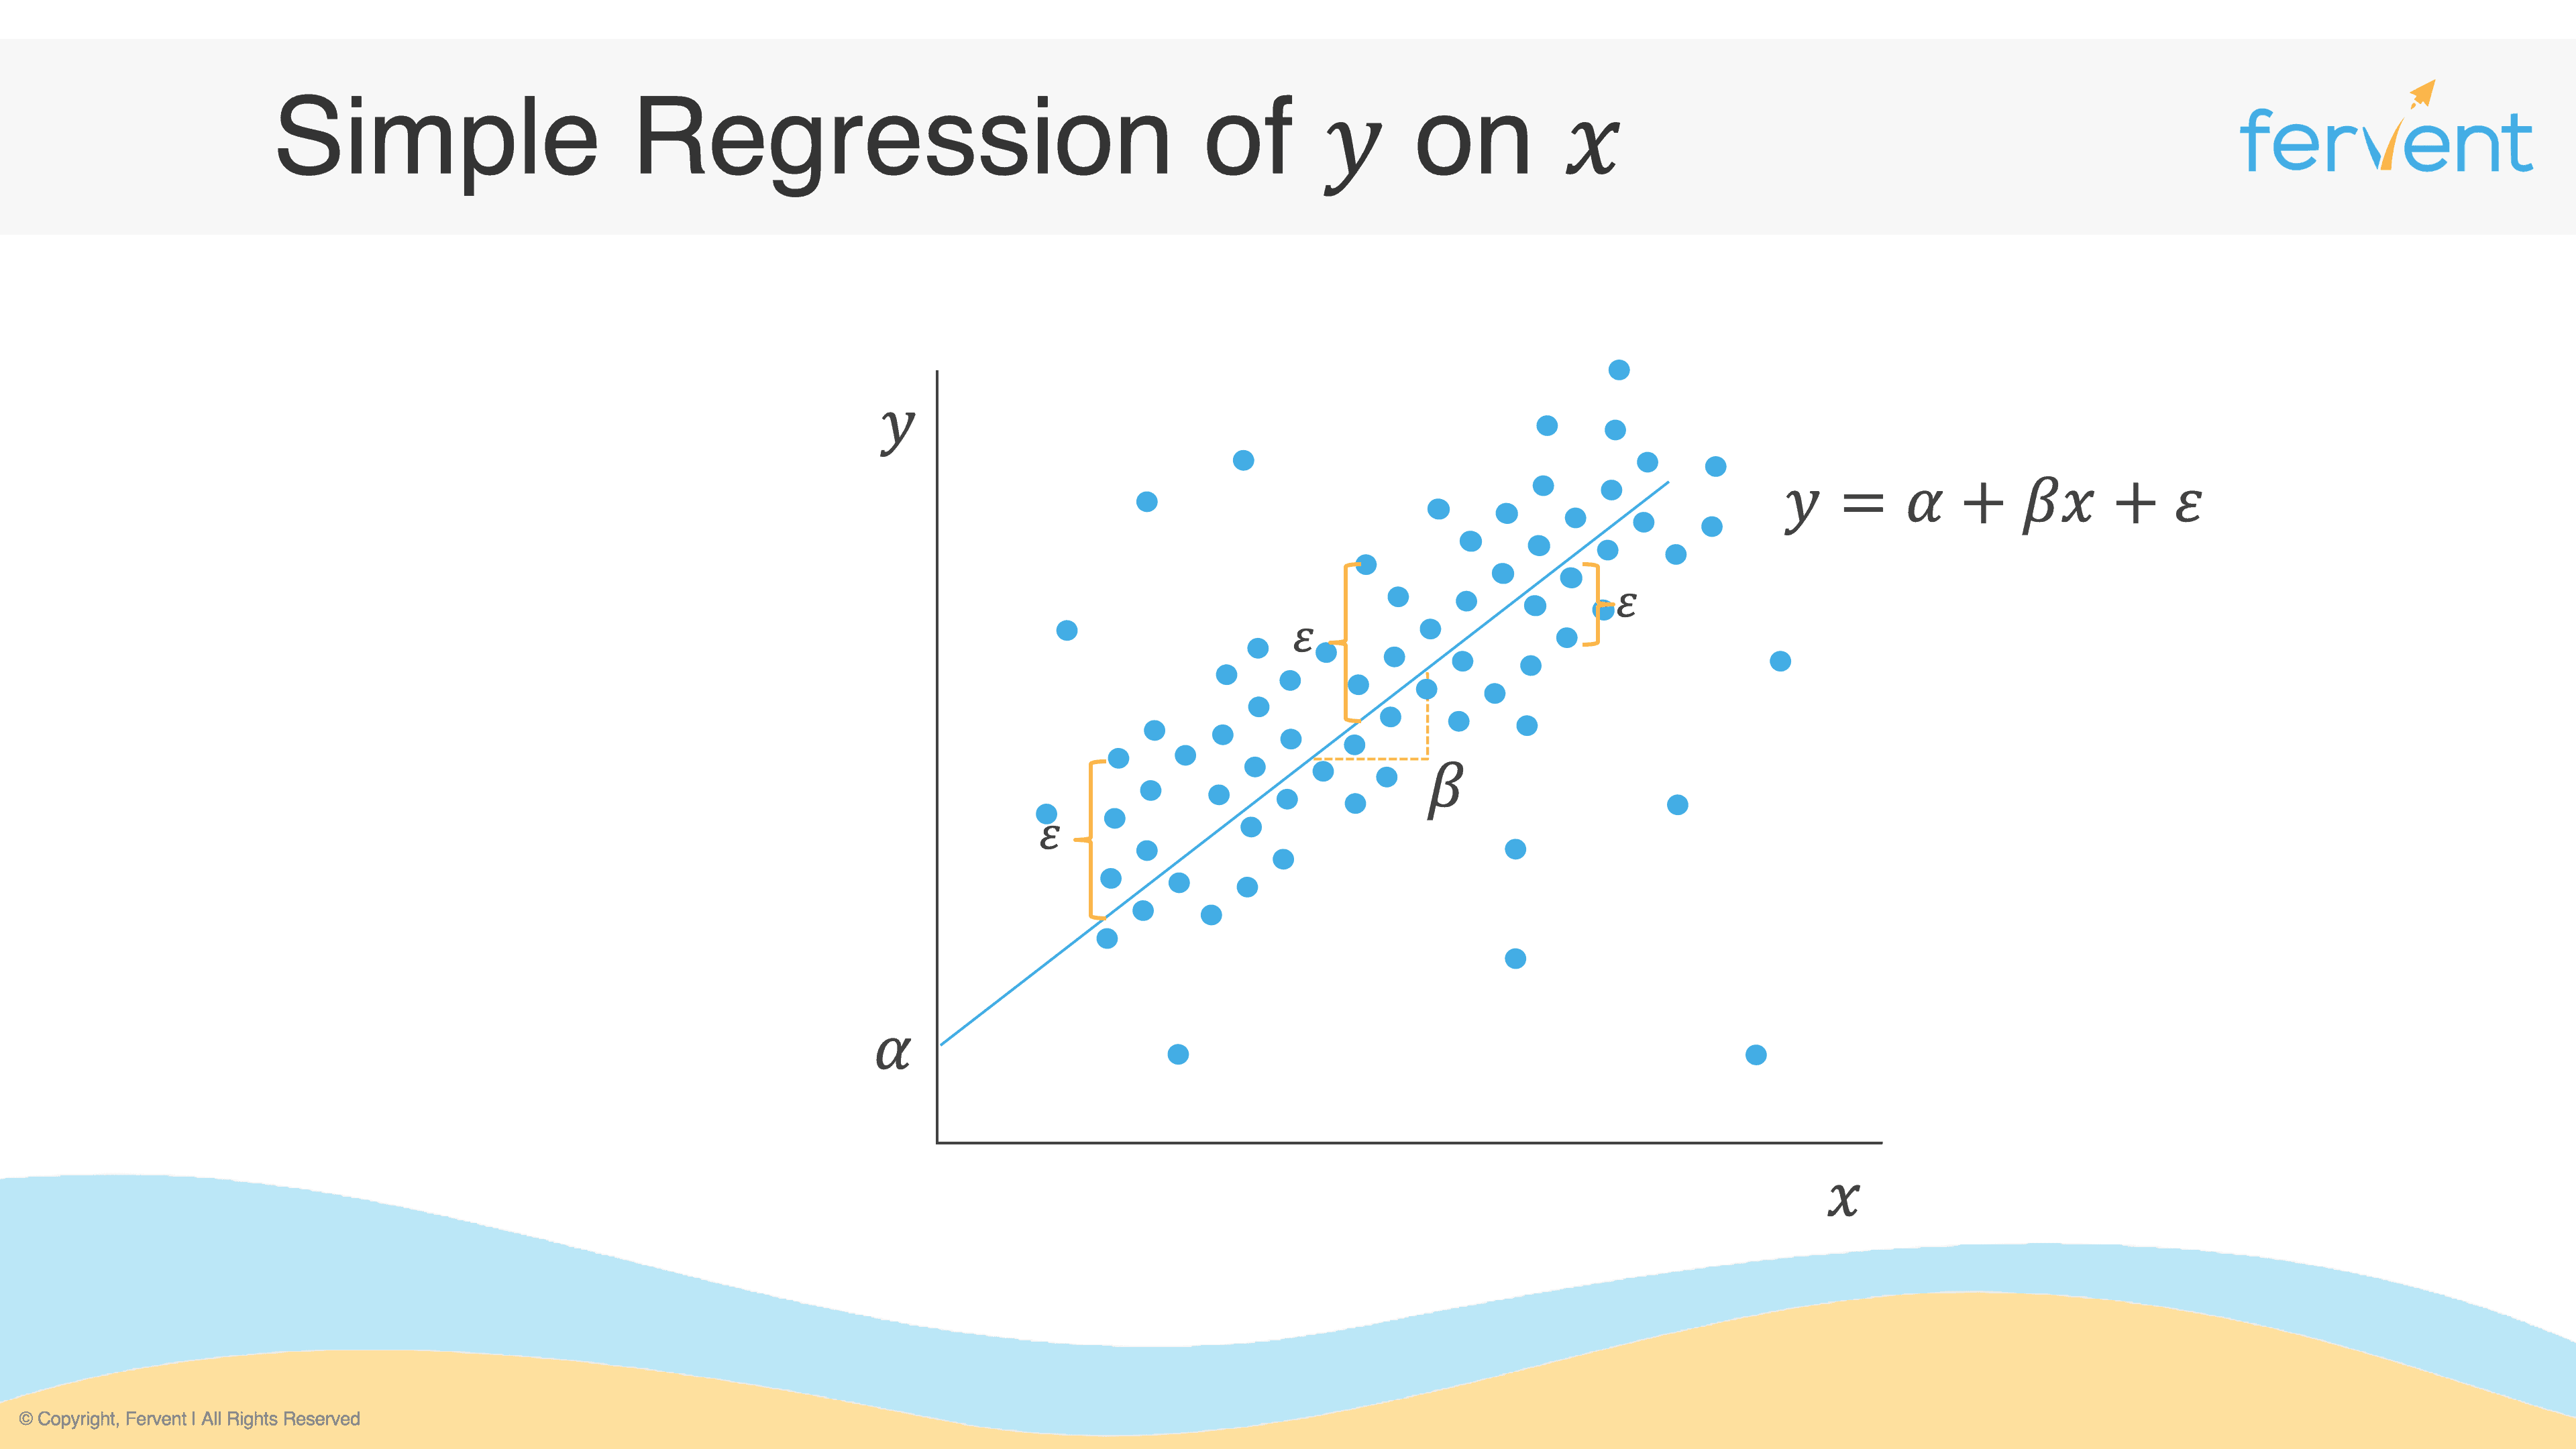 Slide showing regression line, building up to a generalised asset pricing model